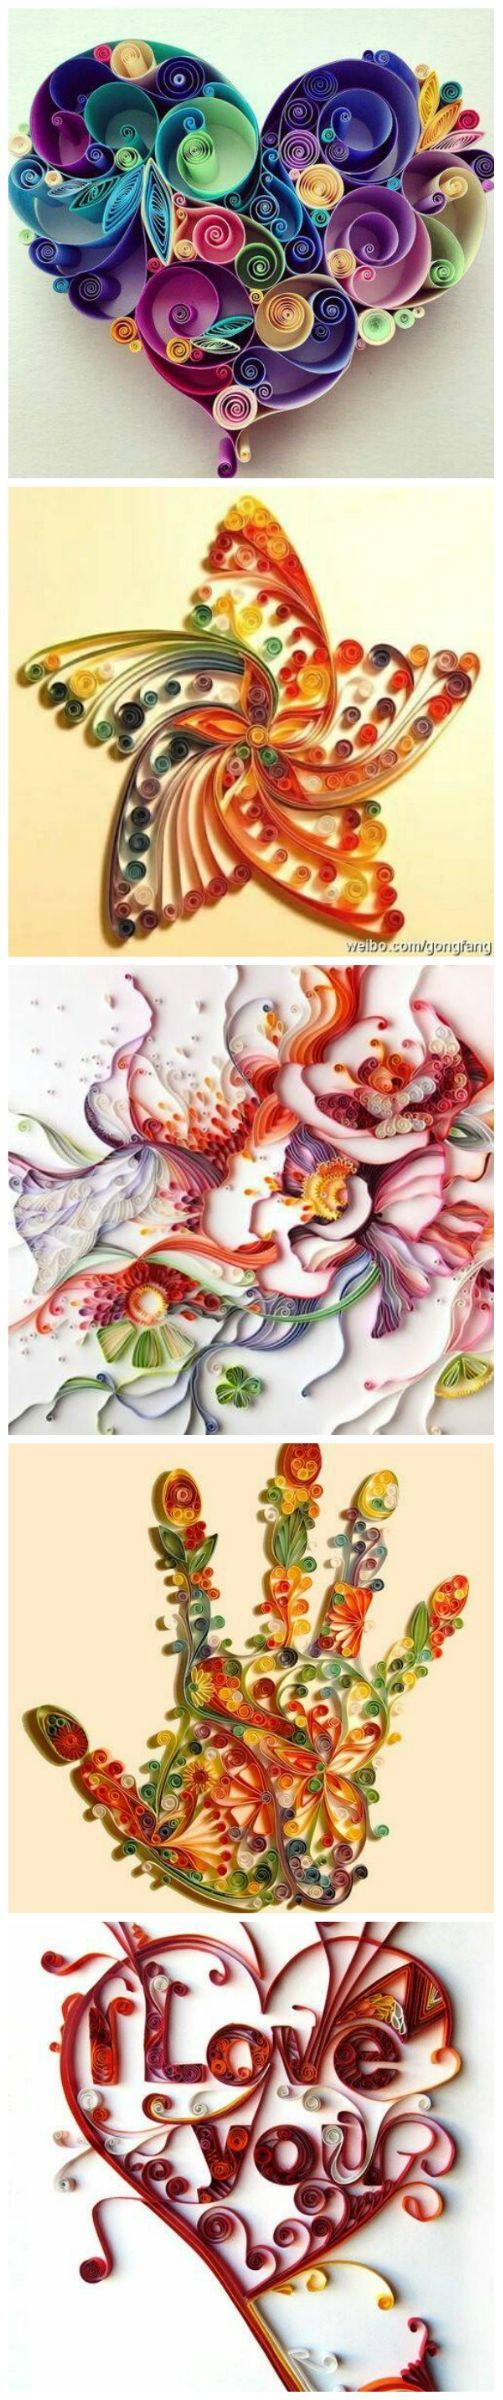 *QUILLING ~ The Art of Turning Paper Strips into Amazing Artworks